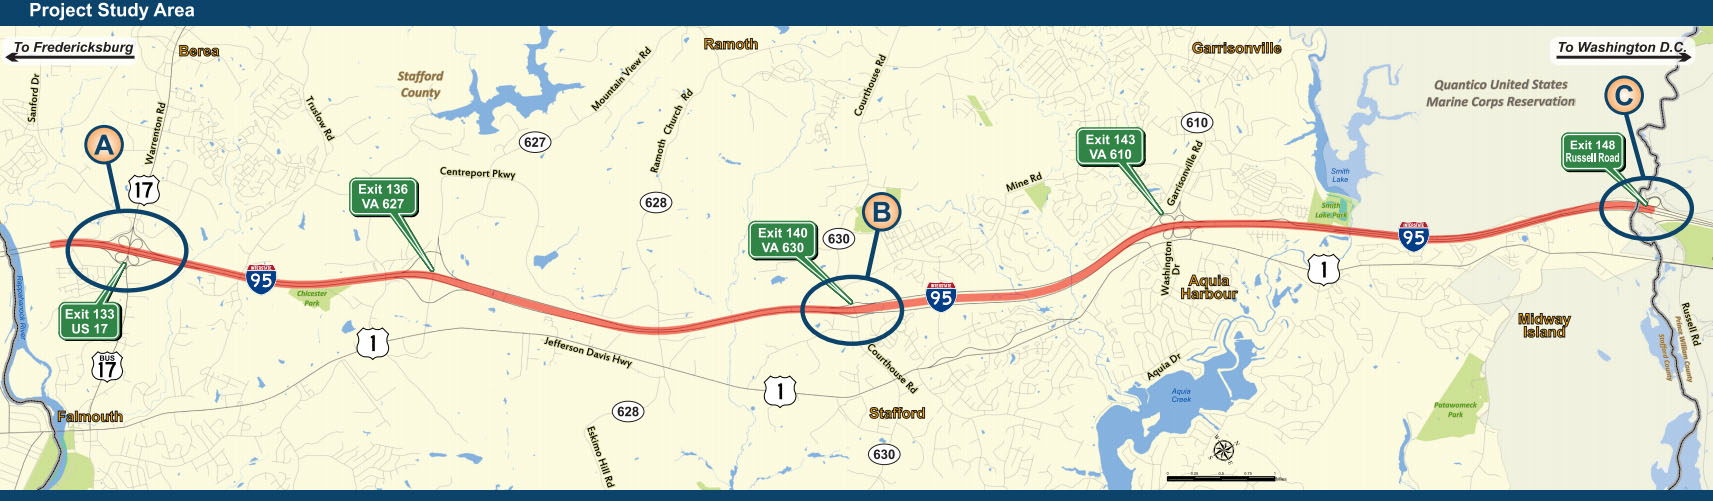 The plan would extend the 95 Express Lanes 10 miles south toward Fredericksburg and add a new exit from the lanes near Quantico over the next five years. (Courtesy VDOT)